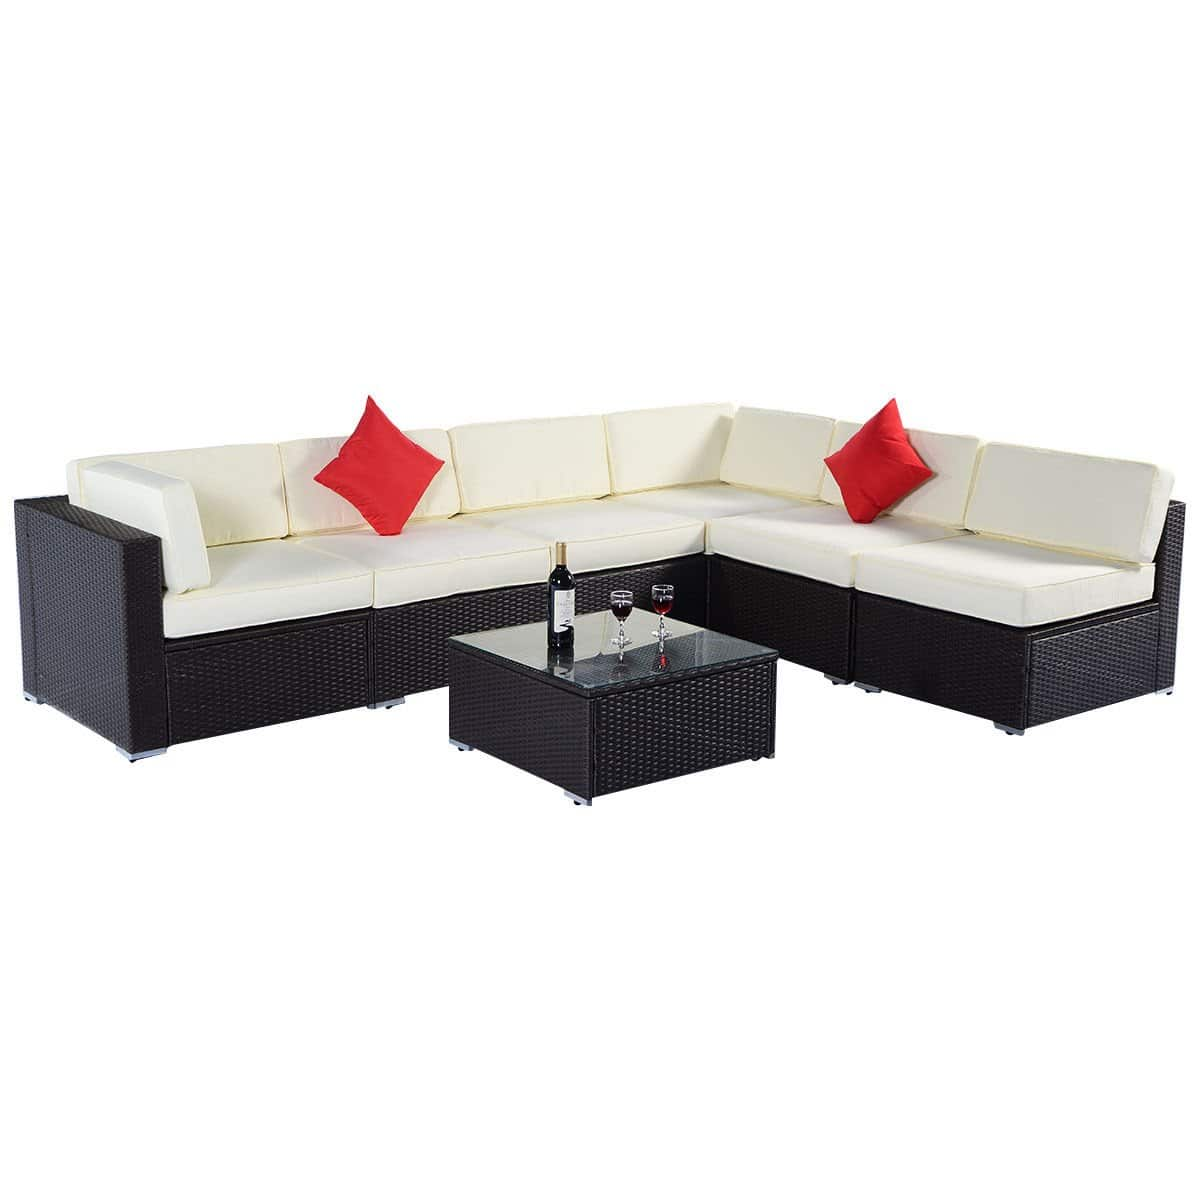 COSTWAY 7PC SECTIONAL WICKER PATIO SOFA SET - $529.99 A/C -  Free Shipping